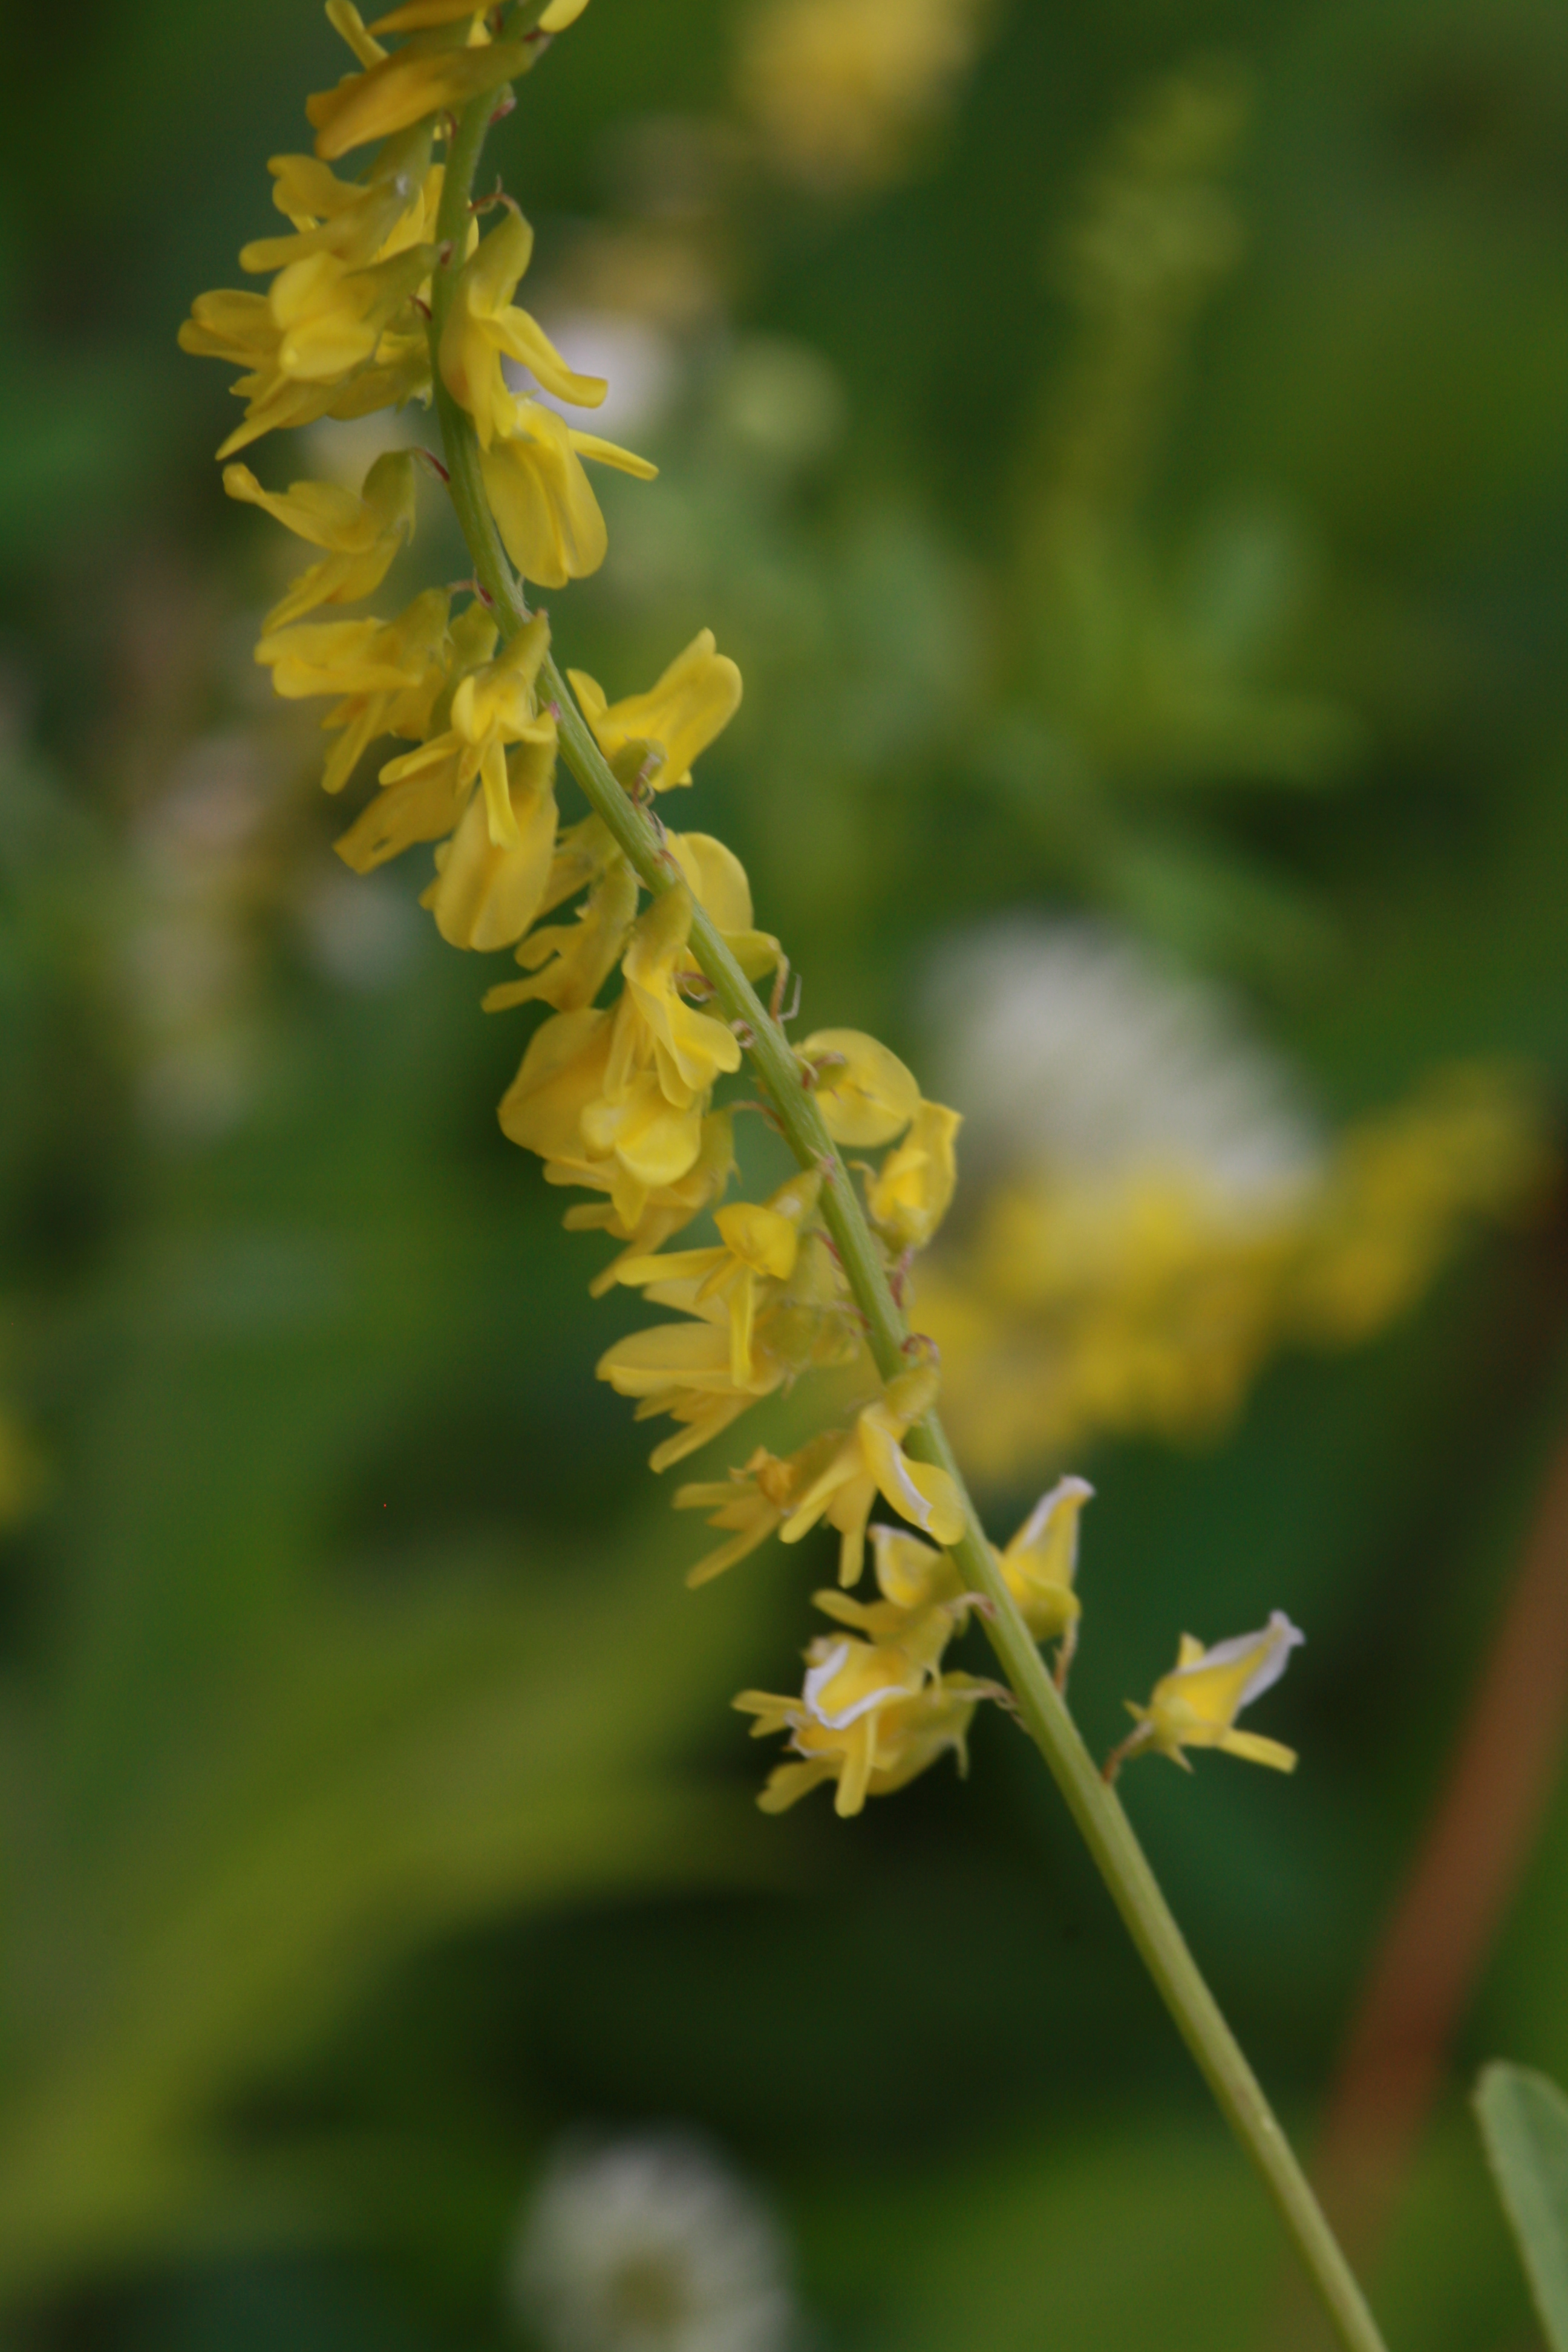 Yellow Sweet Clover Melilotus Officinalis Pollen Grains Reference